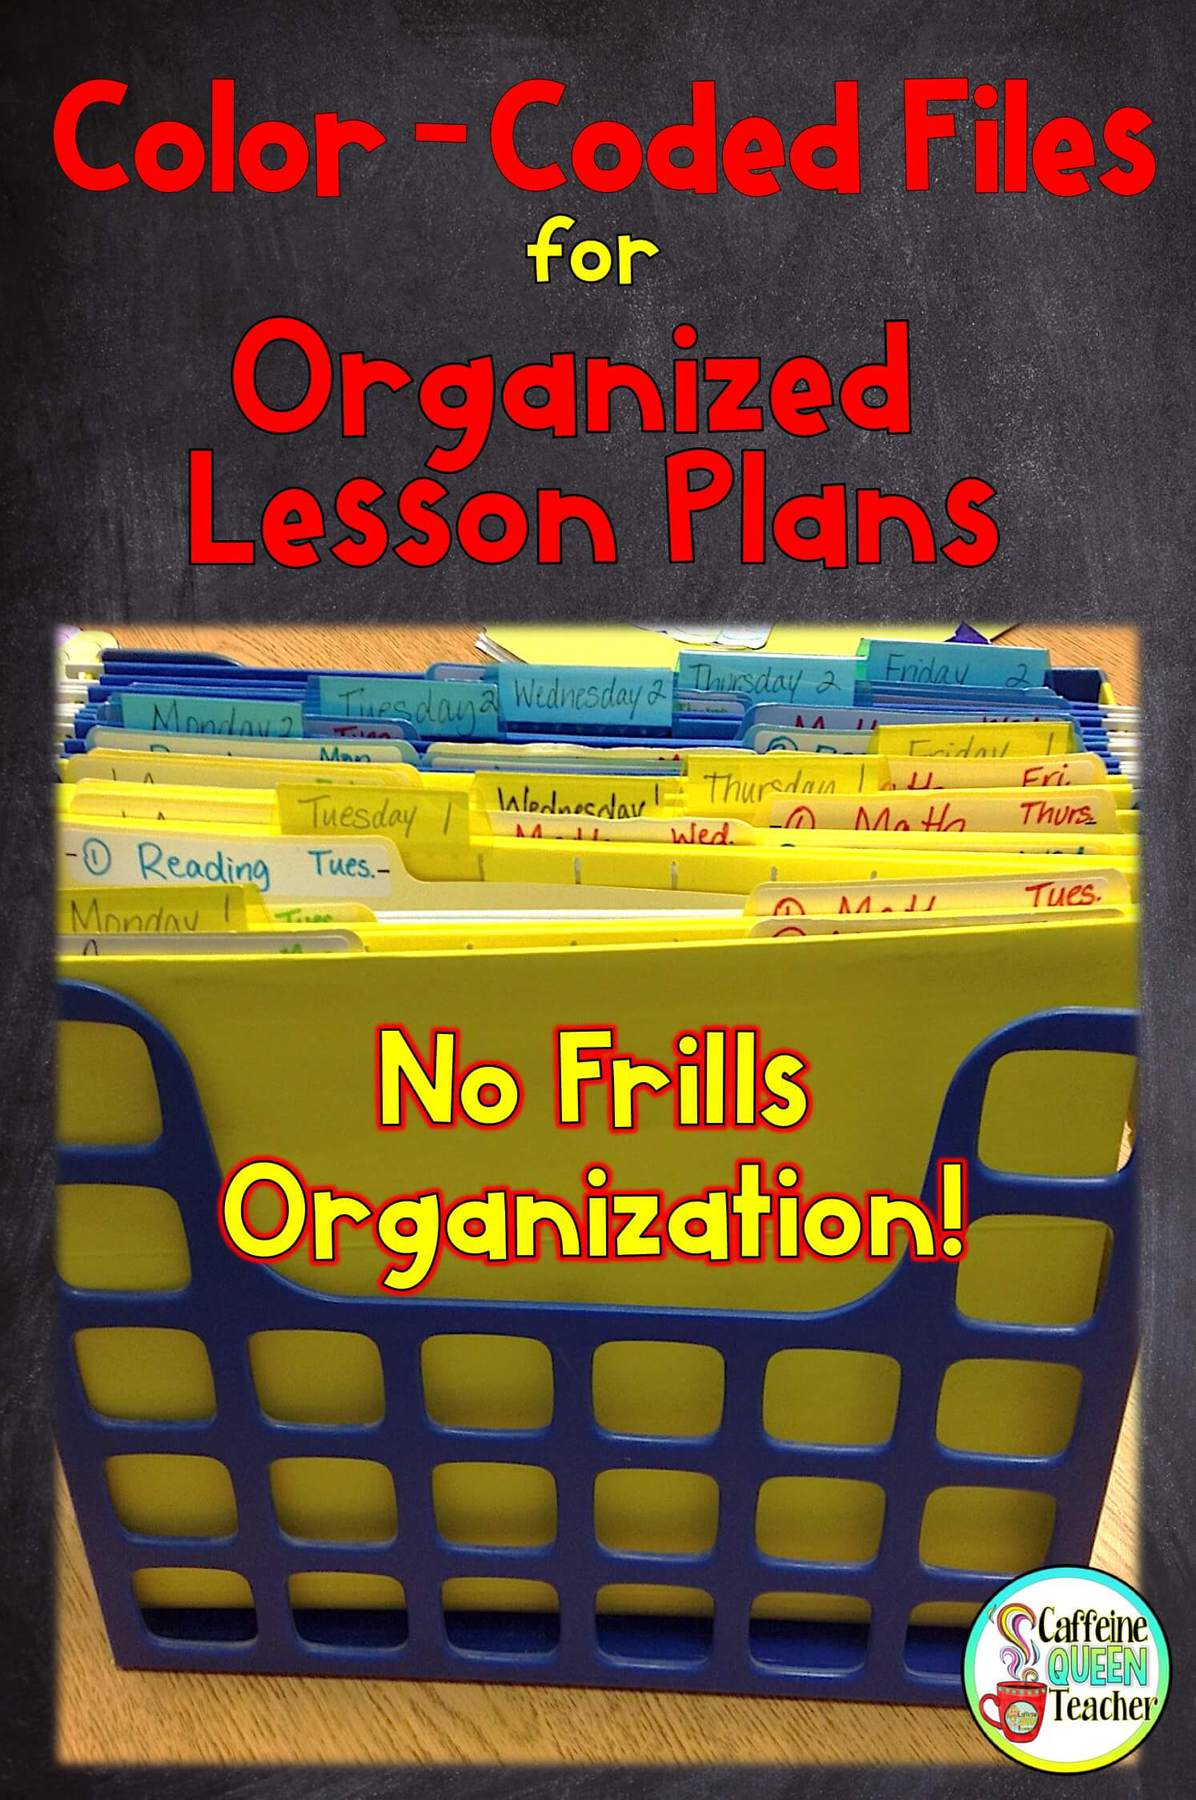 Color Coded Files for Organized Lesson Plans